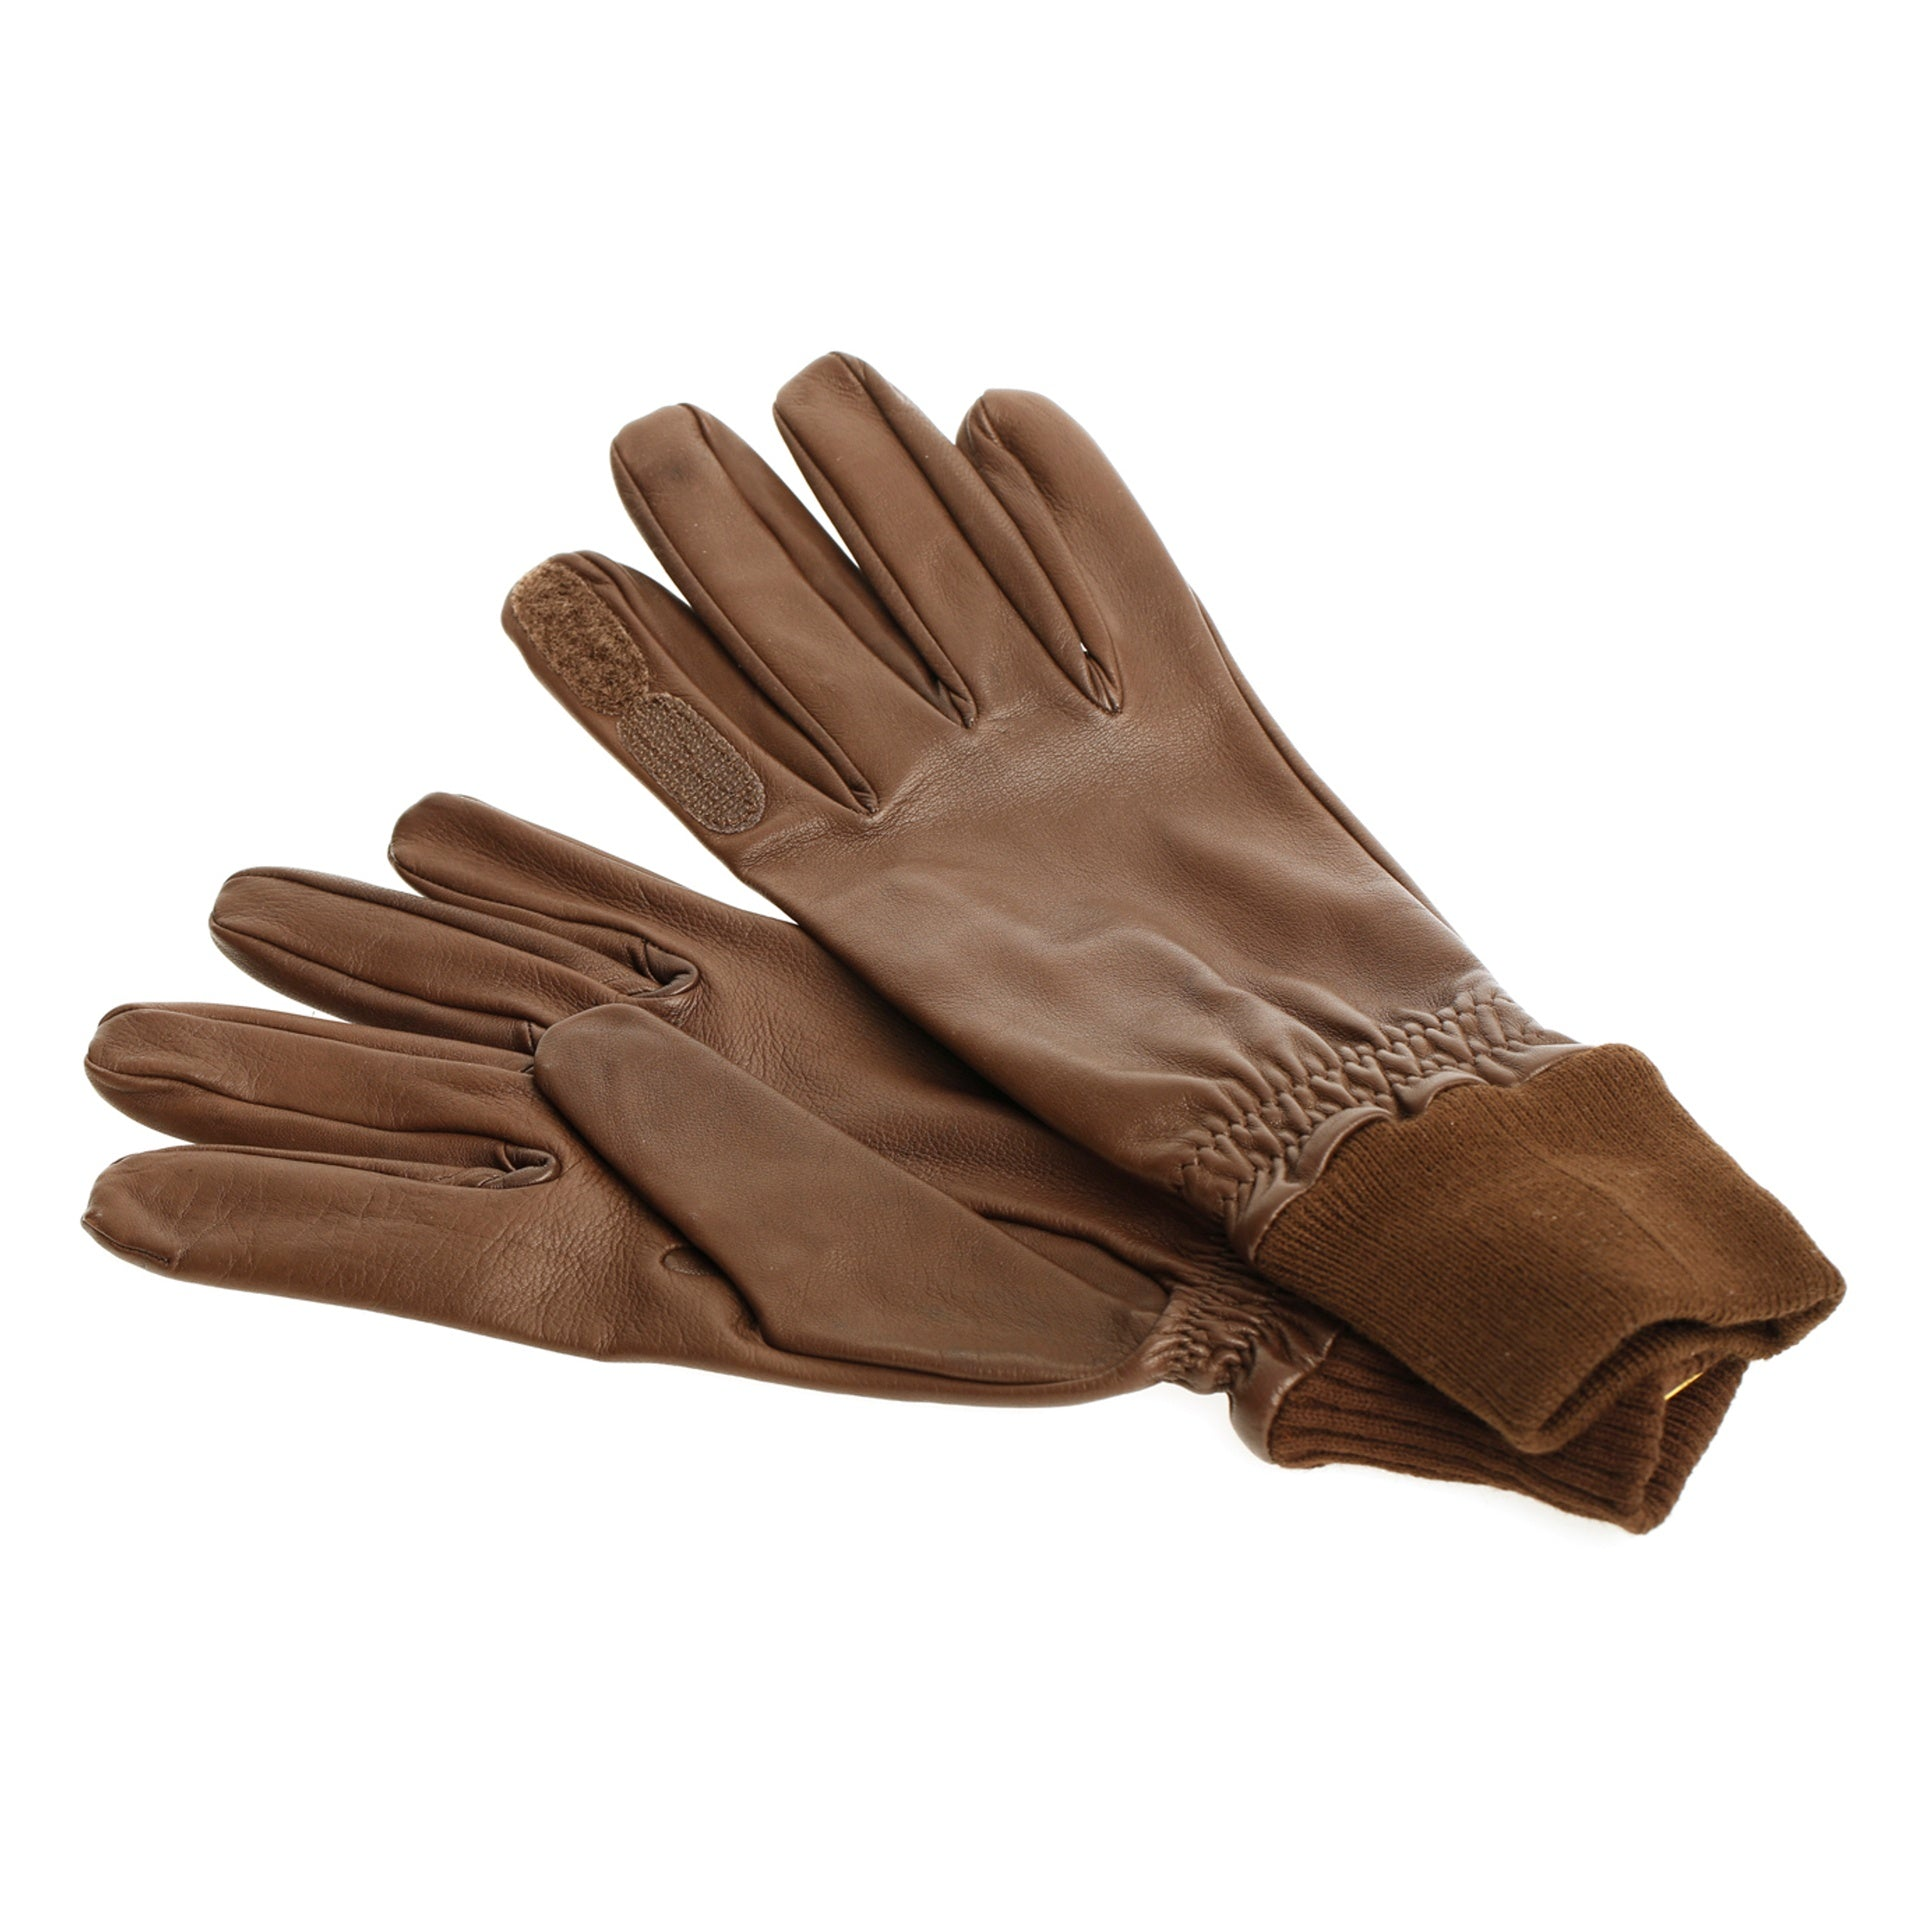 Gants de tir Gameswoman marron